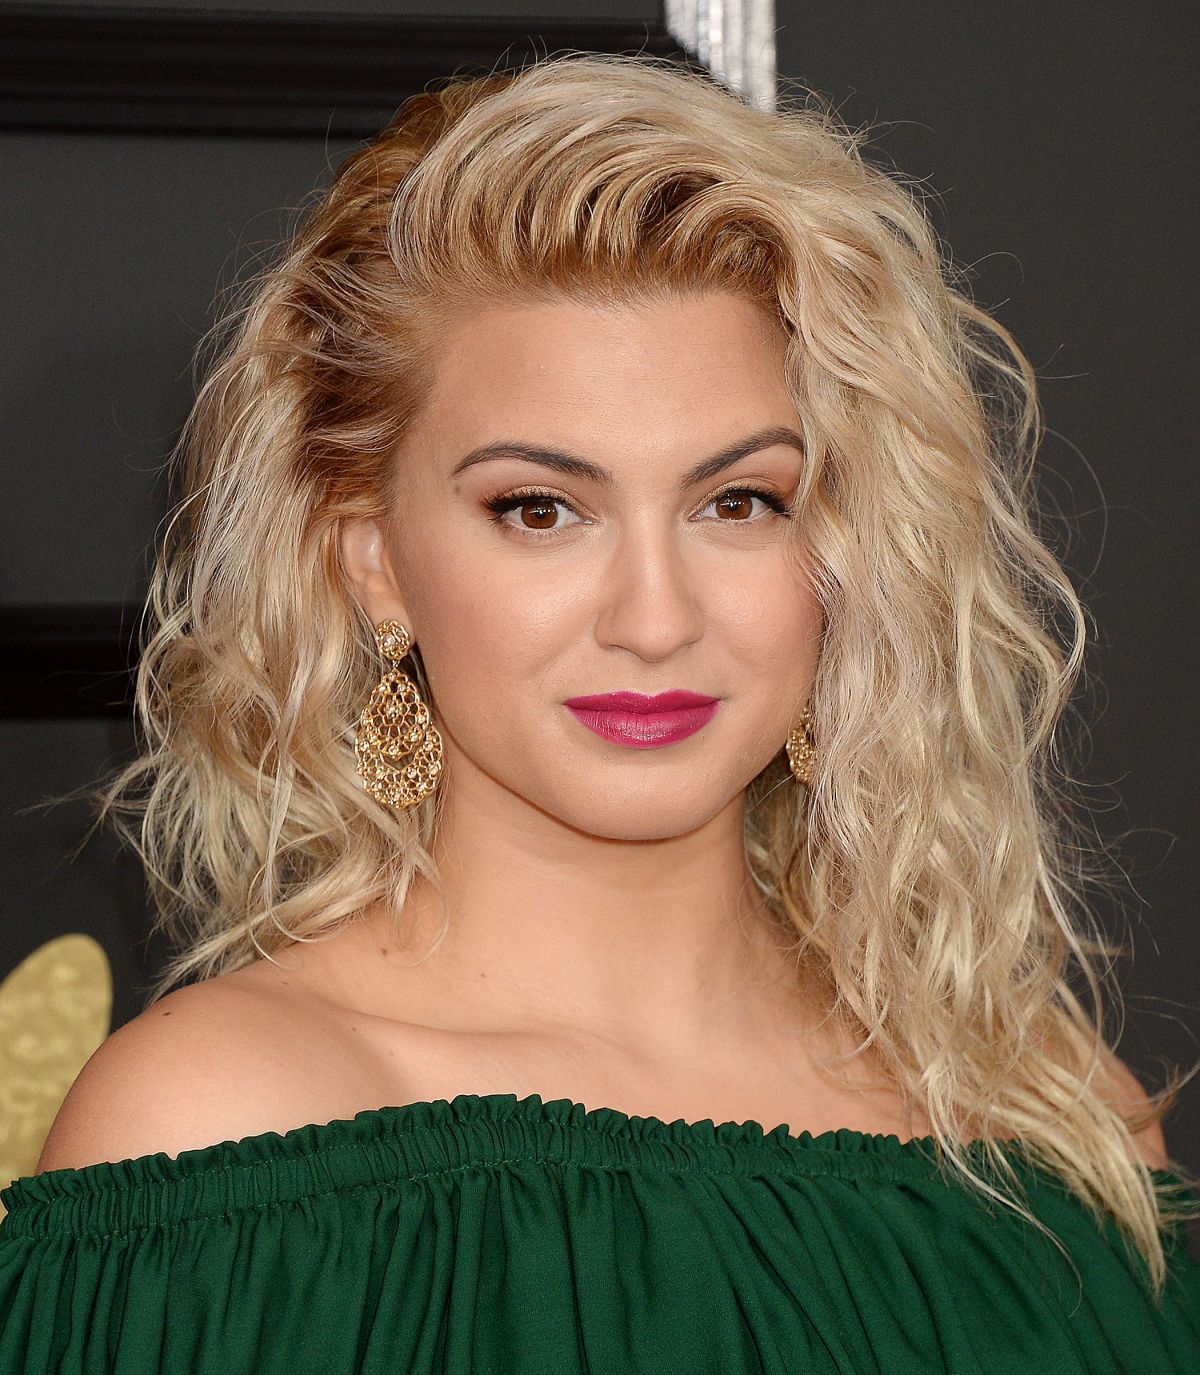 tori-kelly-at-59th-annual-grammy-awards-in-los-angeles-02-12-2017_1.jpg